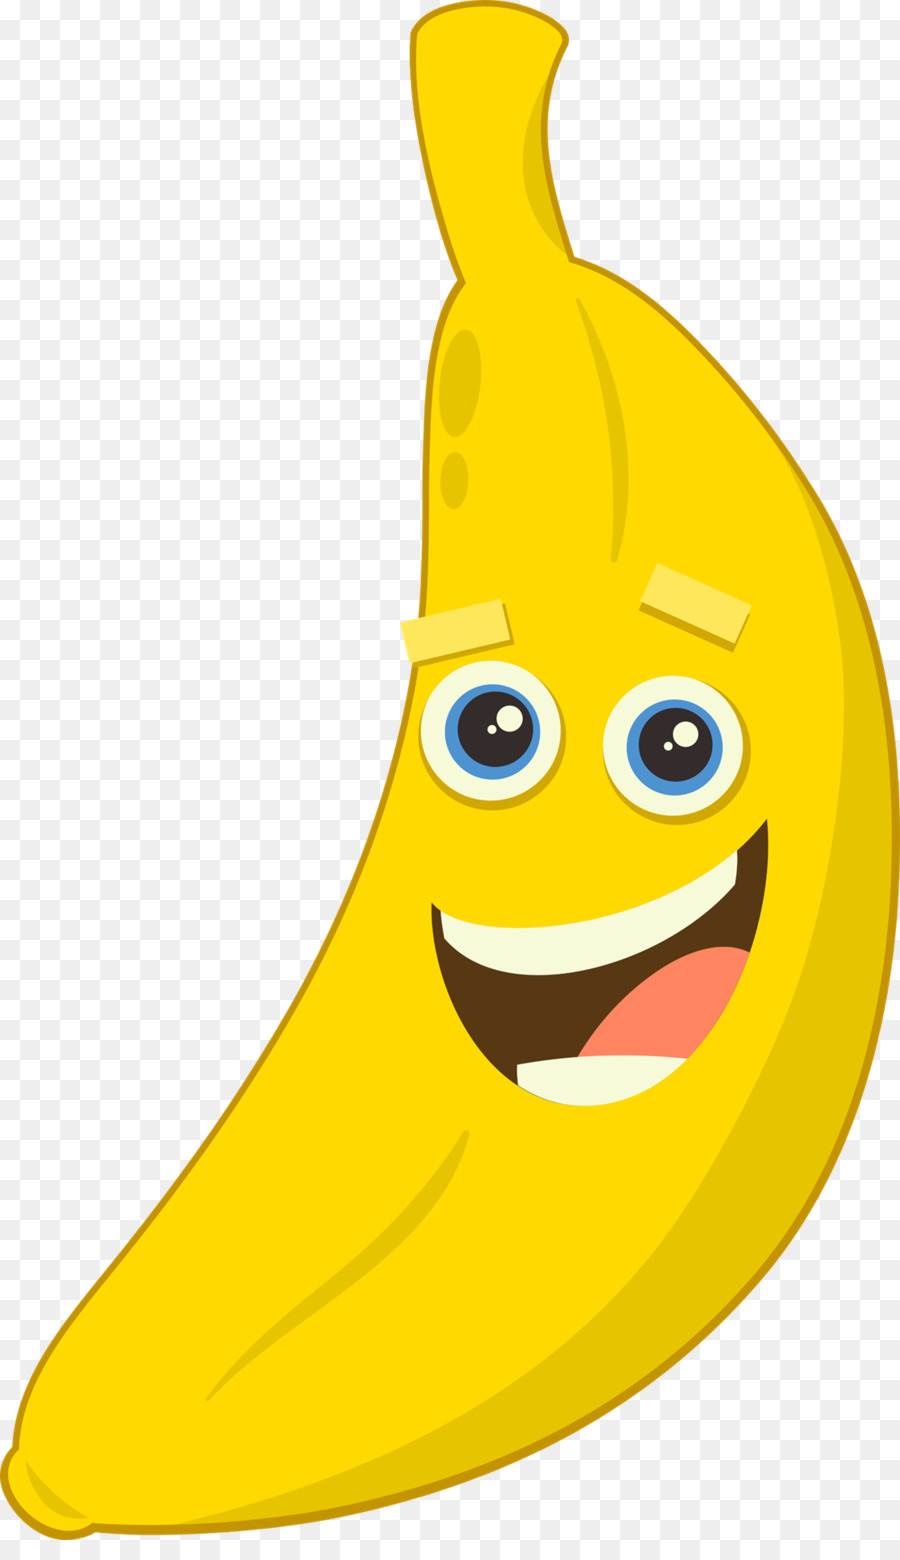 Banana smiley. Drawing of family clipart